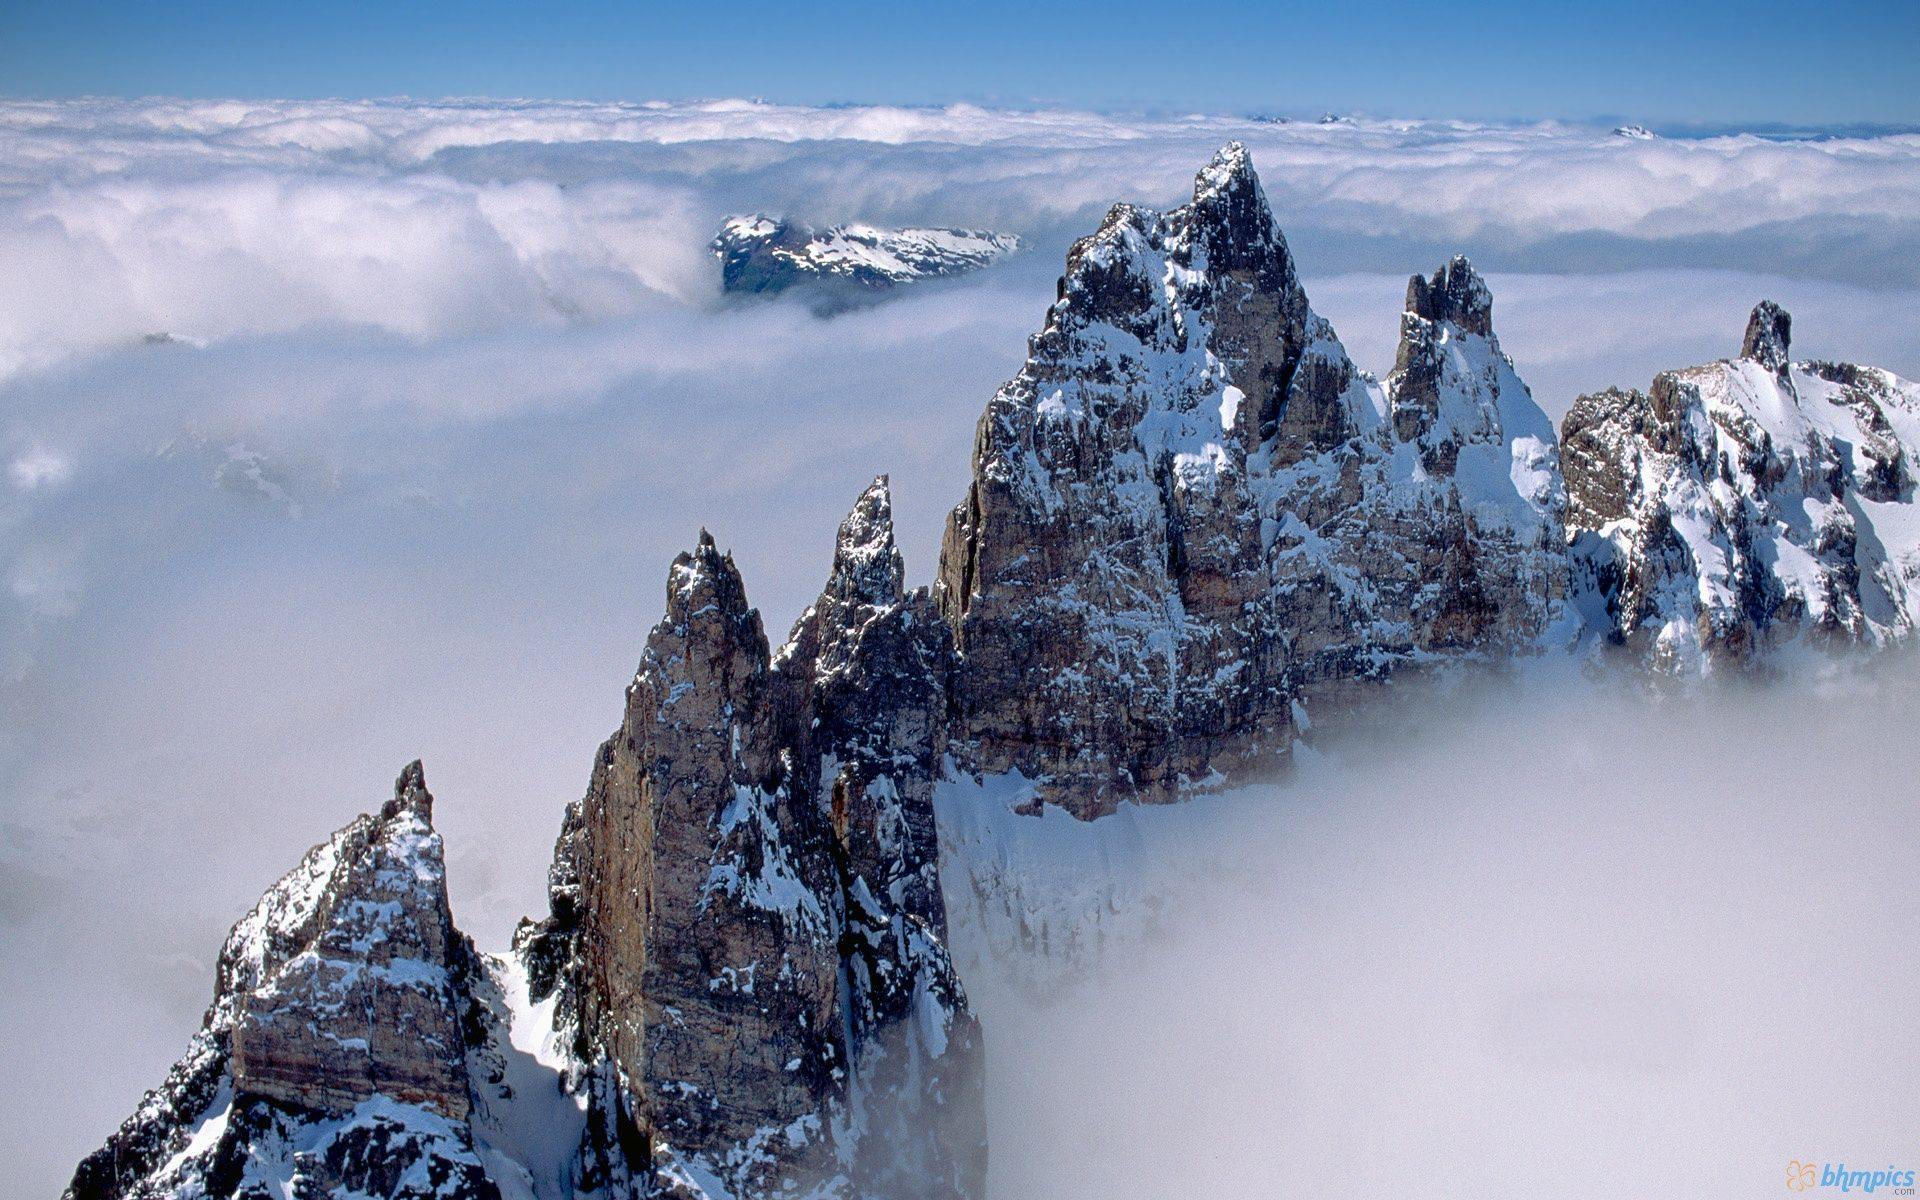 hd mountain peaks above clouds wallpaper free